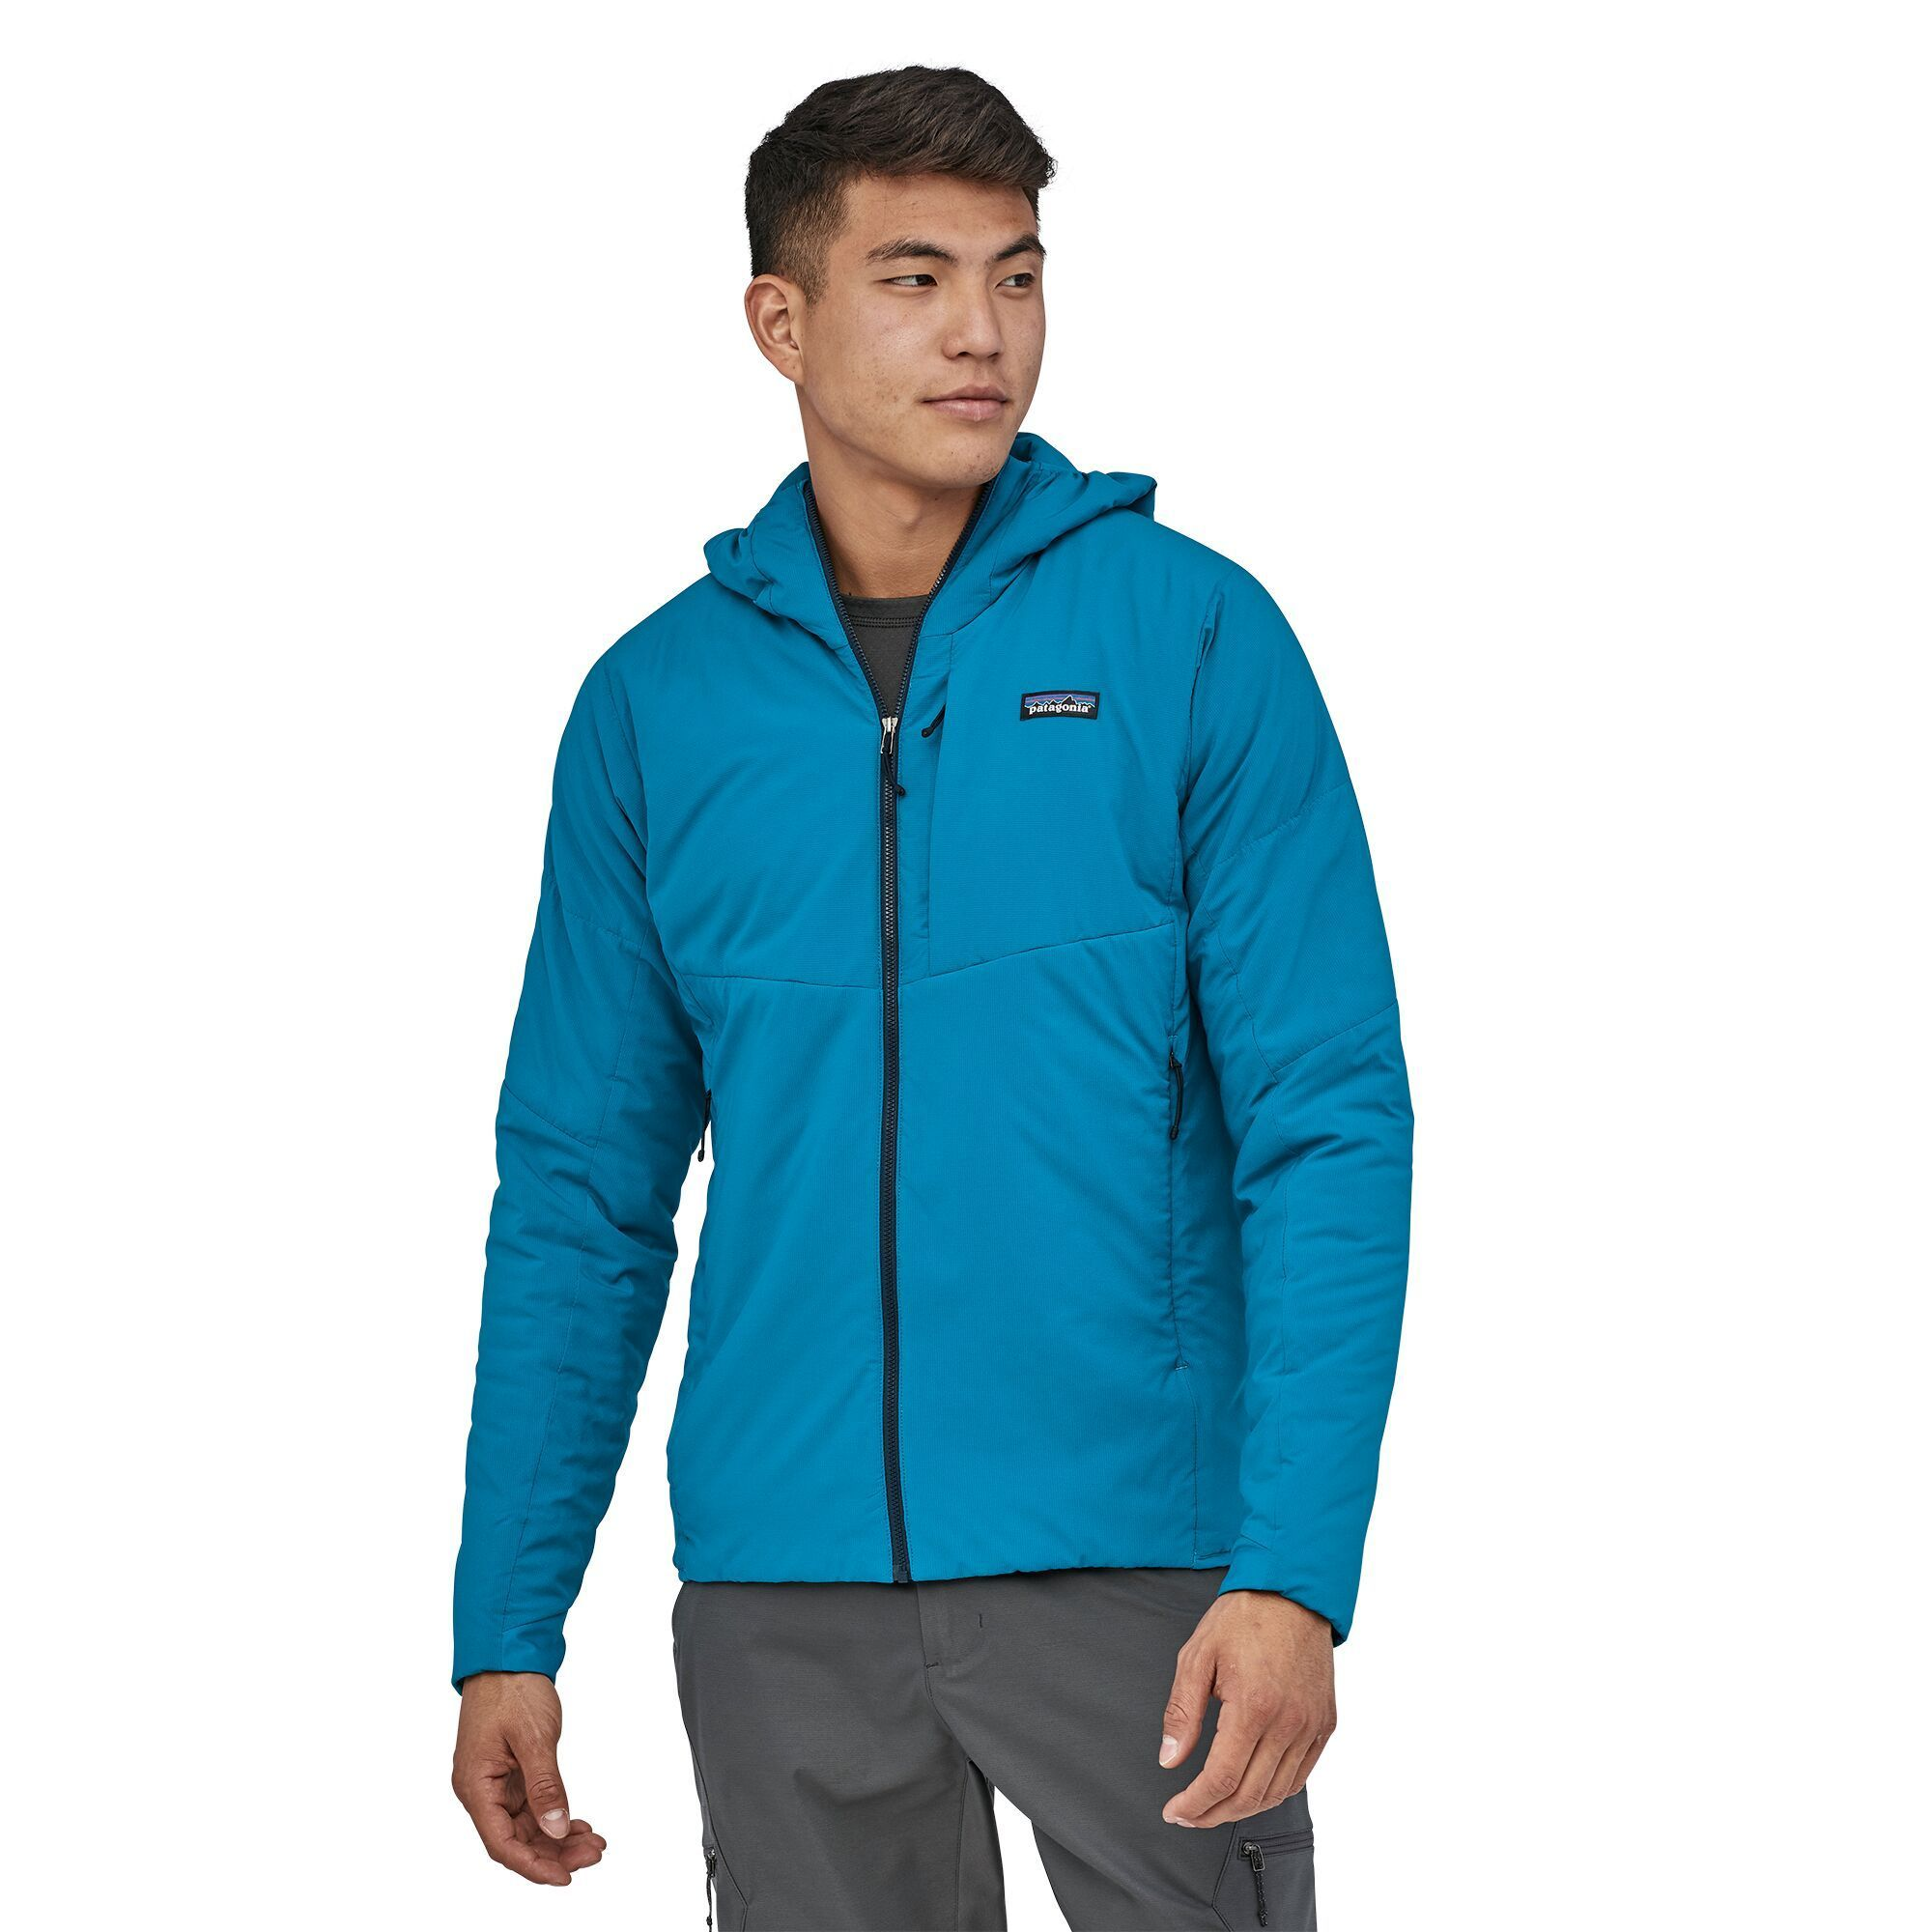 Patagonia - Men's Nano-Air® Hoody - Recycled Polyester - Weekendbee - sustainable sportswear